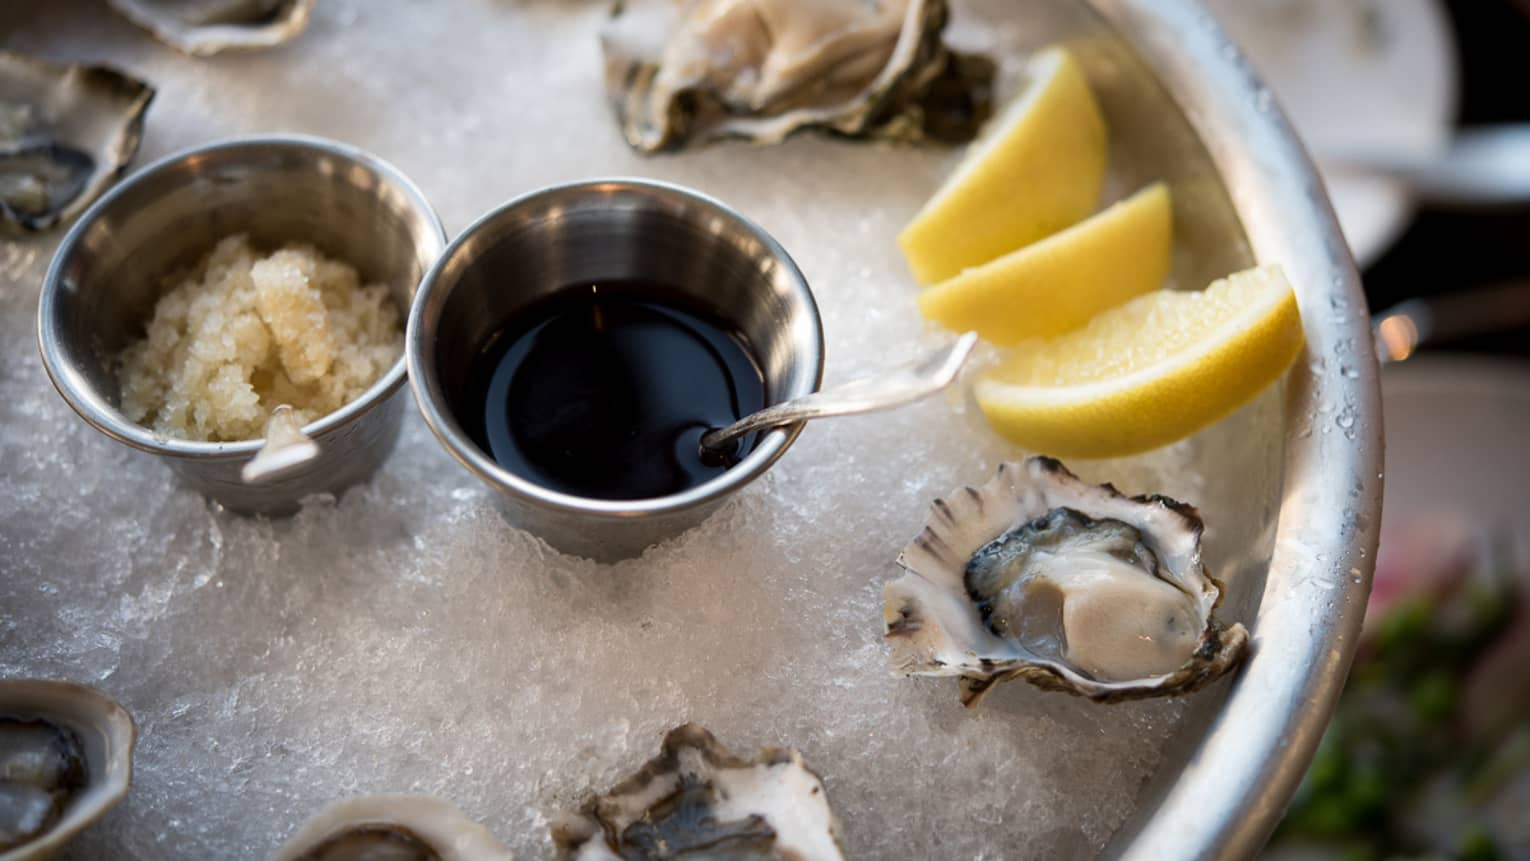 Half-shell oysters, lemon wedges on ice in silver platter